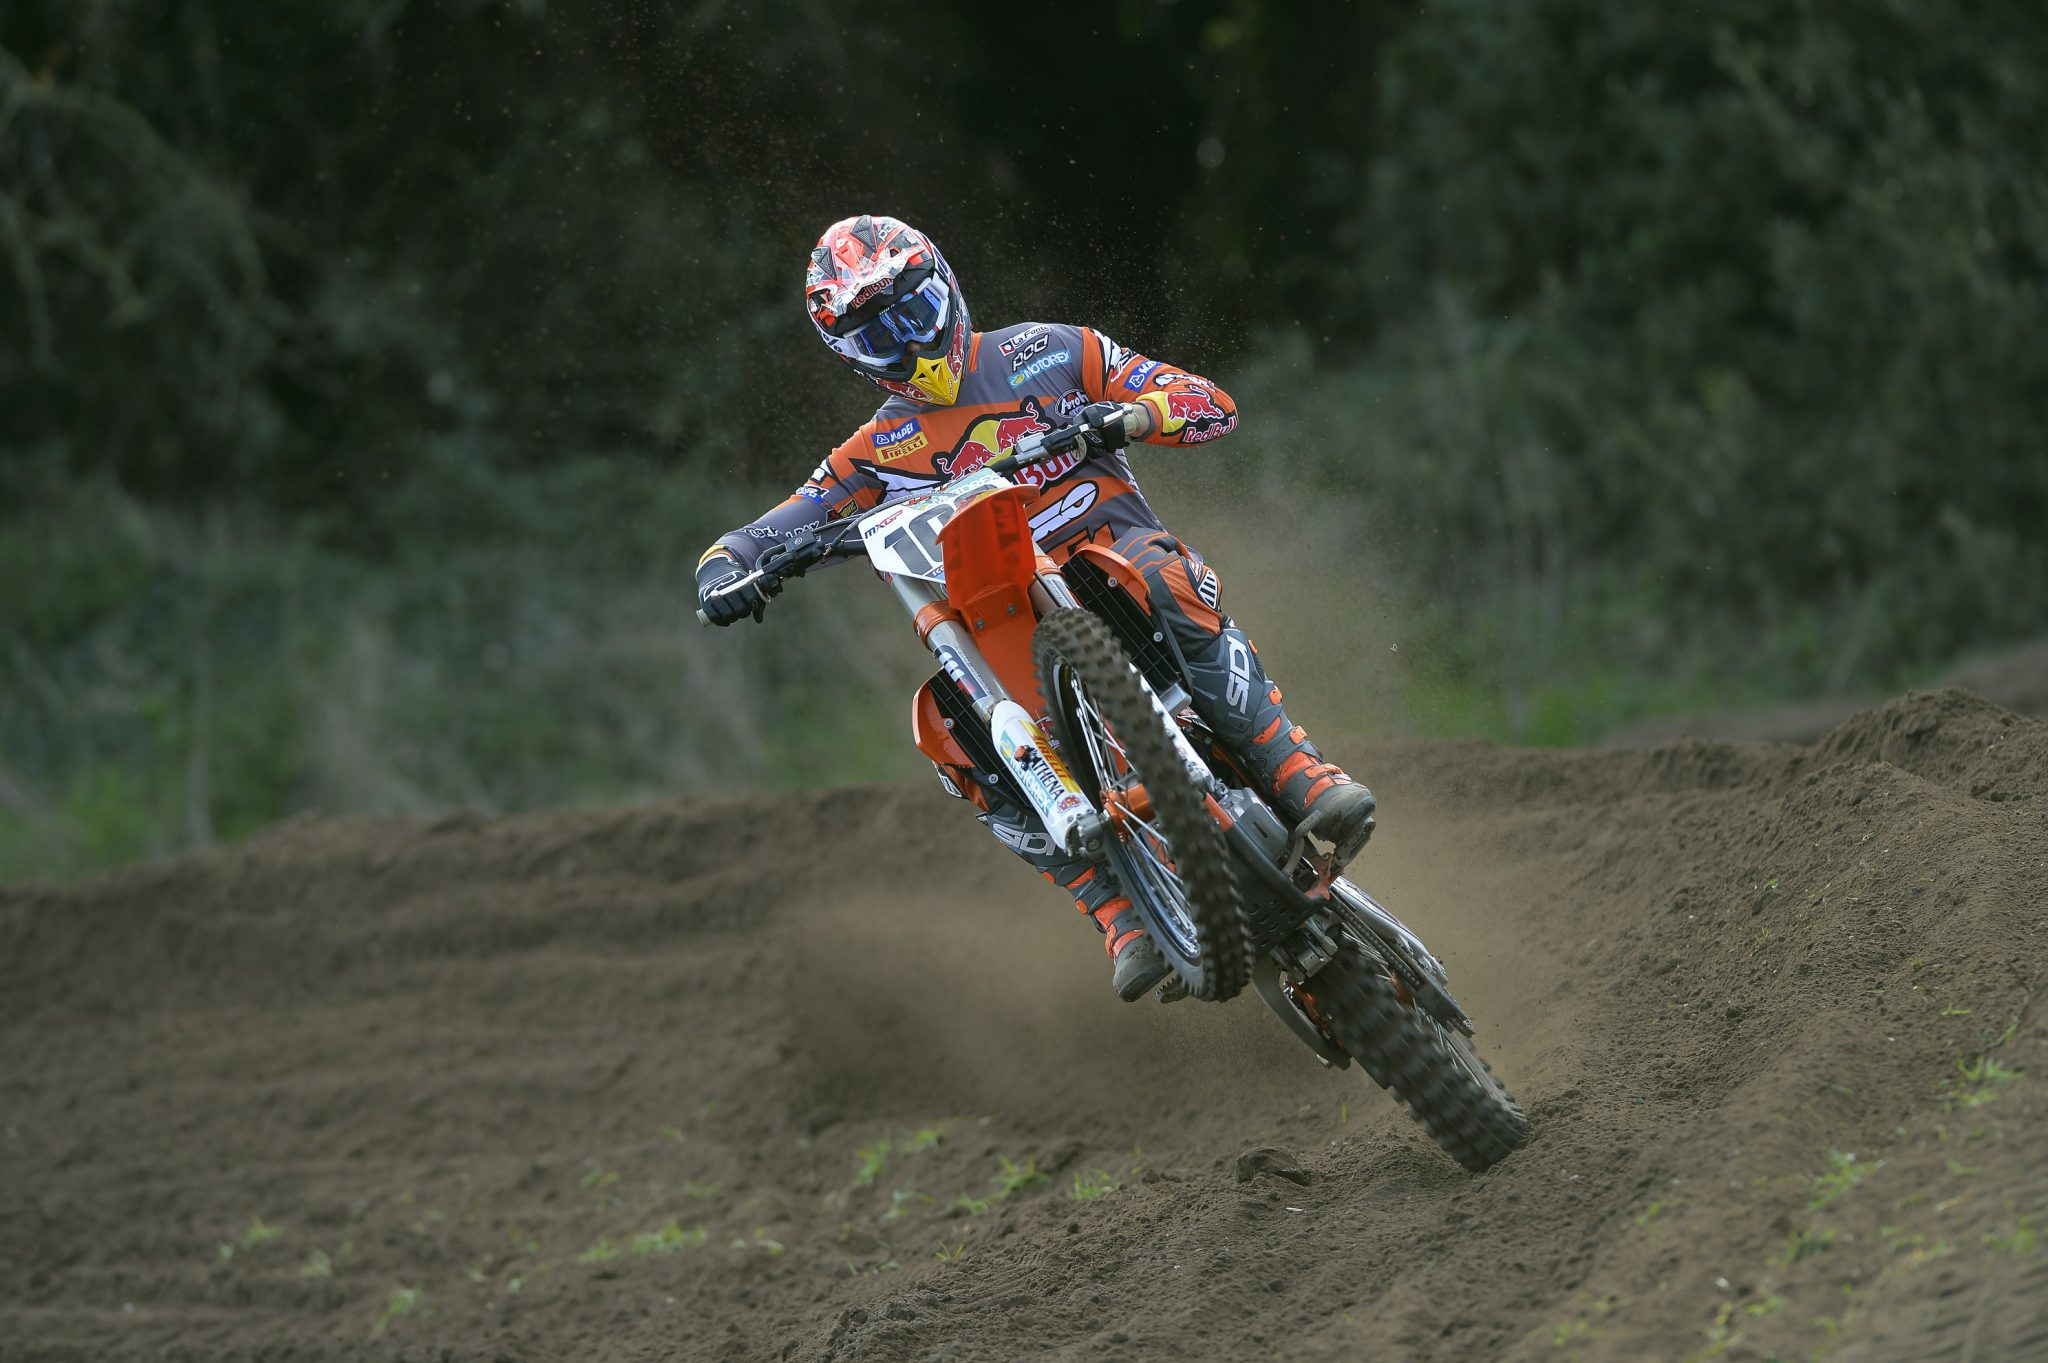 102842_13_015_KTM15_Searle_action_2976